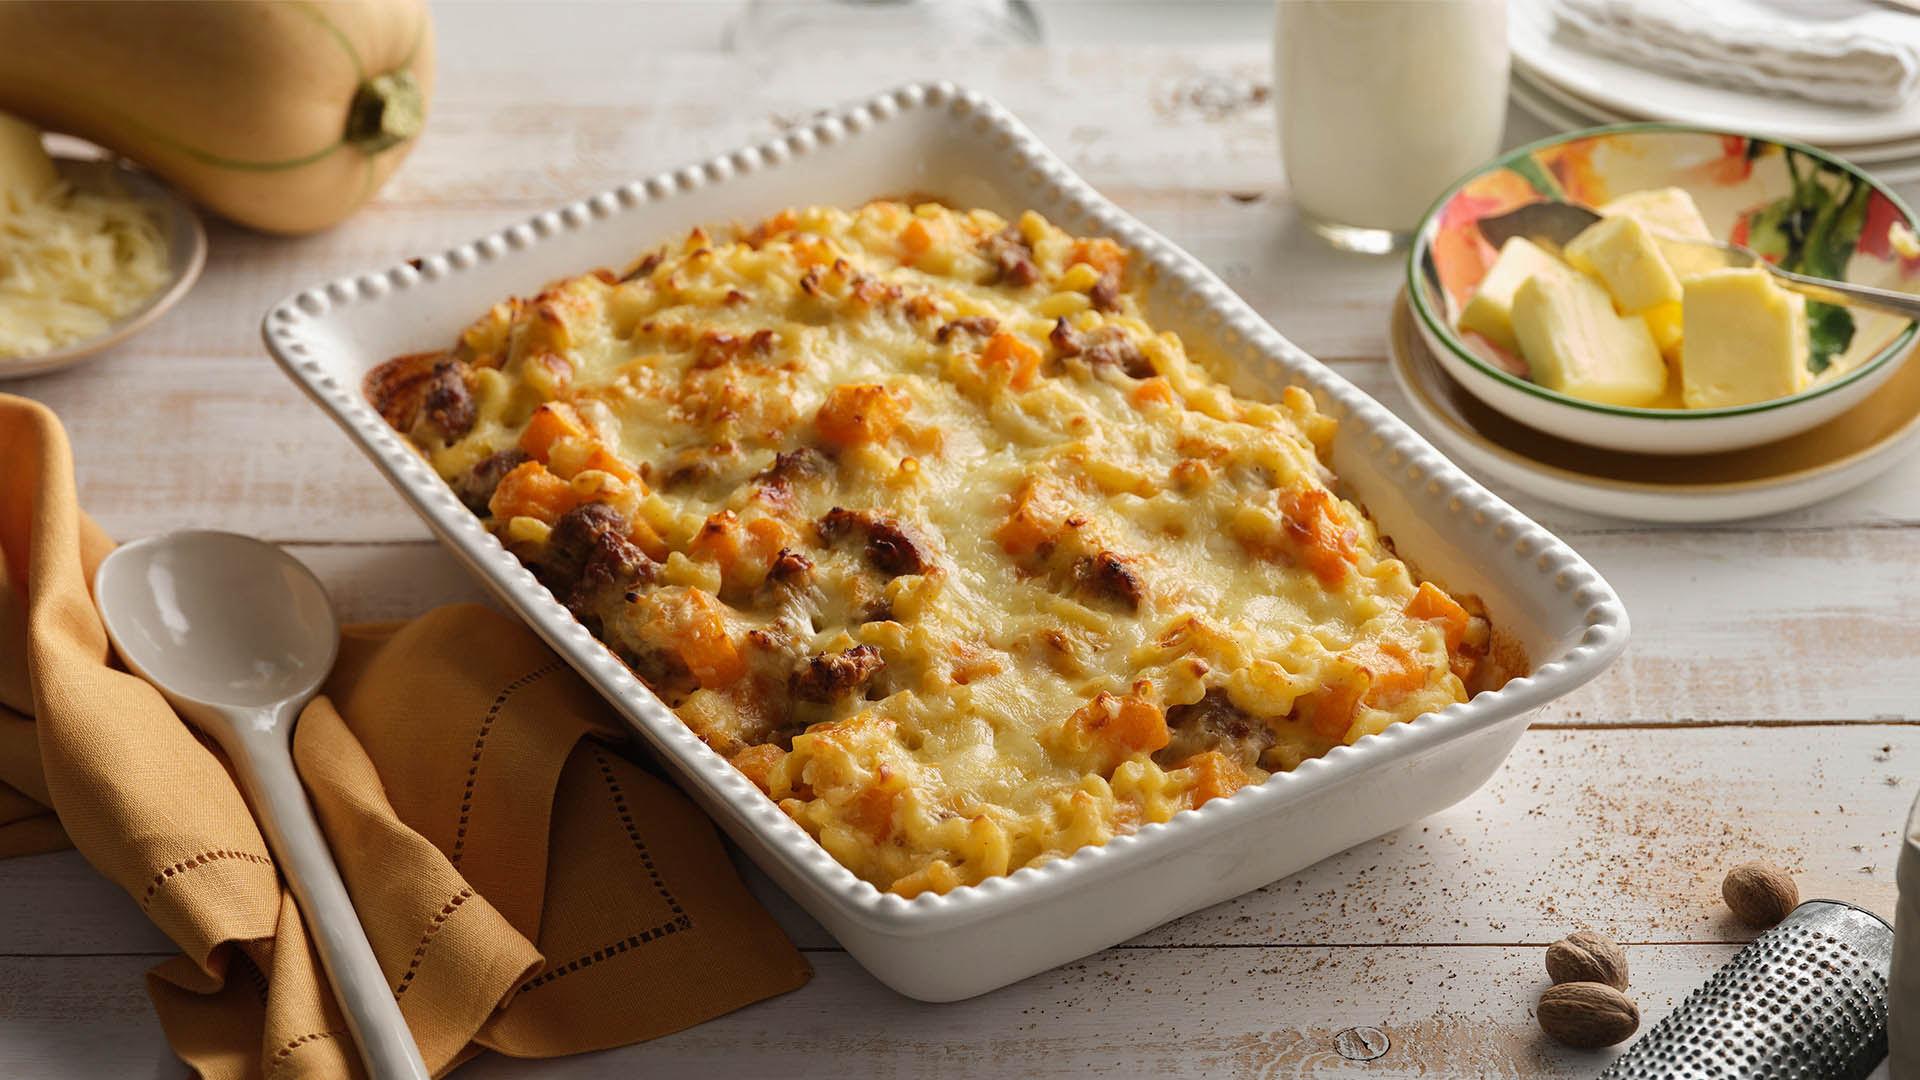 Side shot of white rectangular baking dish containing Butternut squash and sausage macaroni on wooden surface.